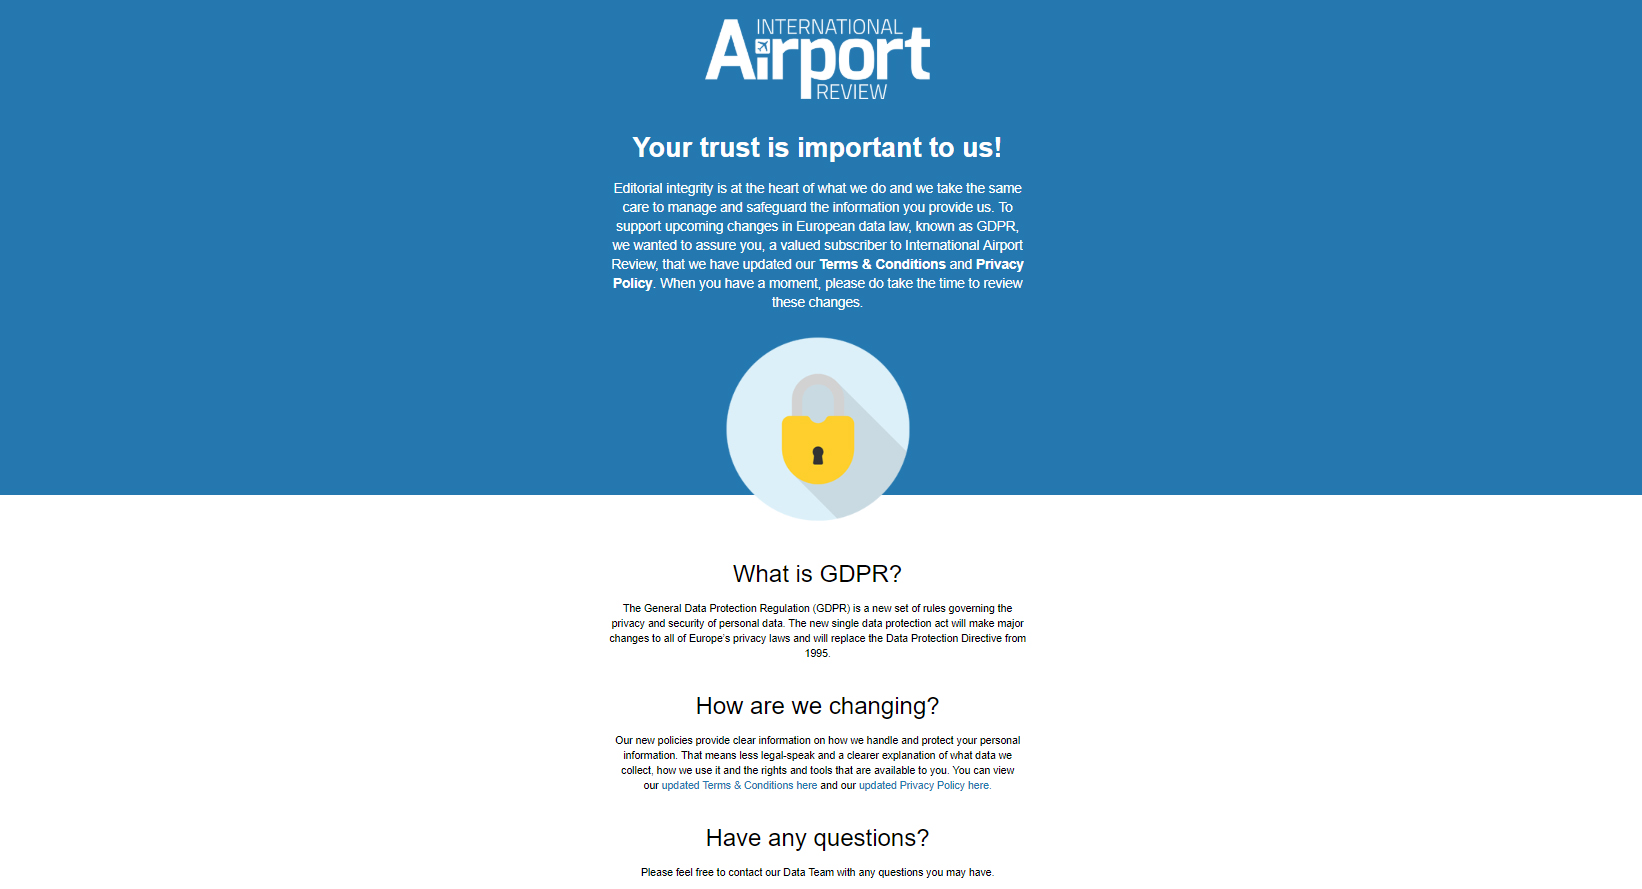 International Airport Review GDPR email